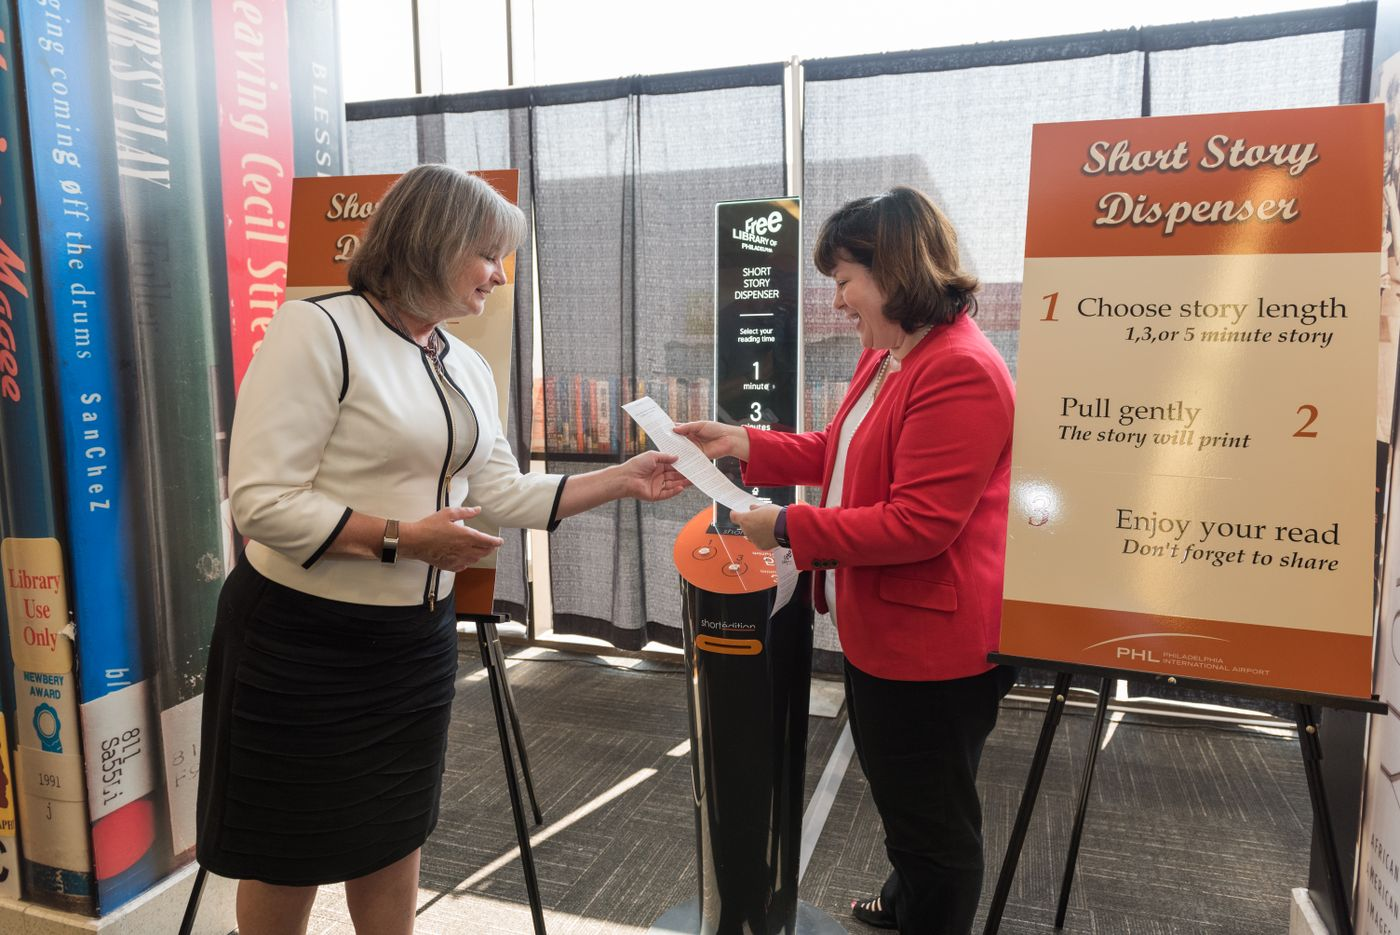 Image of [ US ] Short Story Dispenser unveiled at Philadelphia International Airport